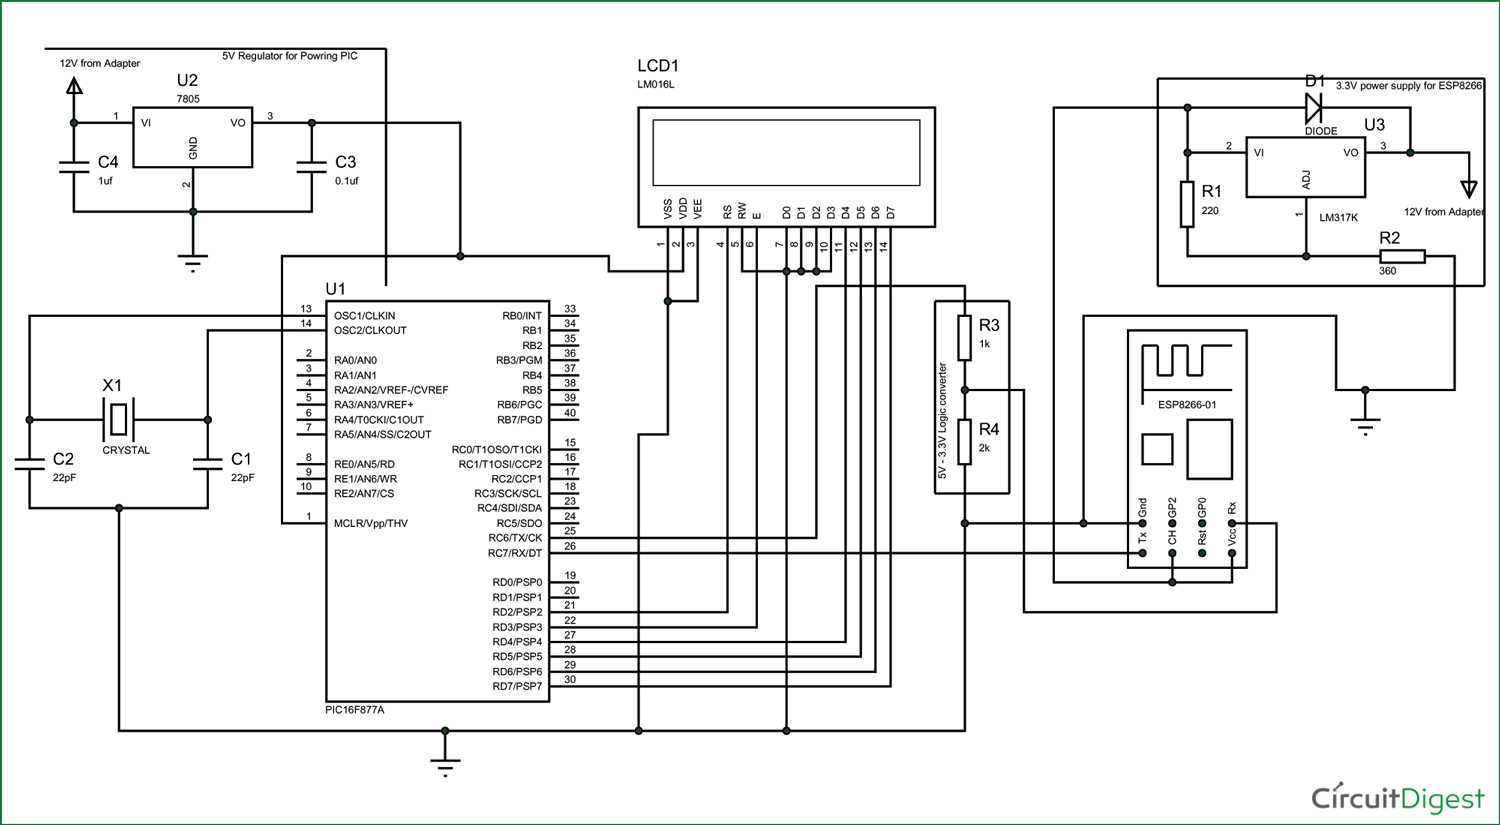 interfacing esp8266 with pic16f877a microcontroller